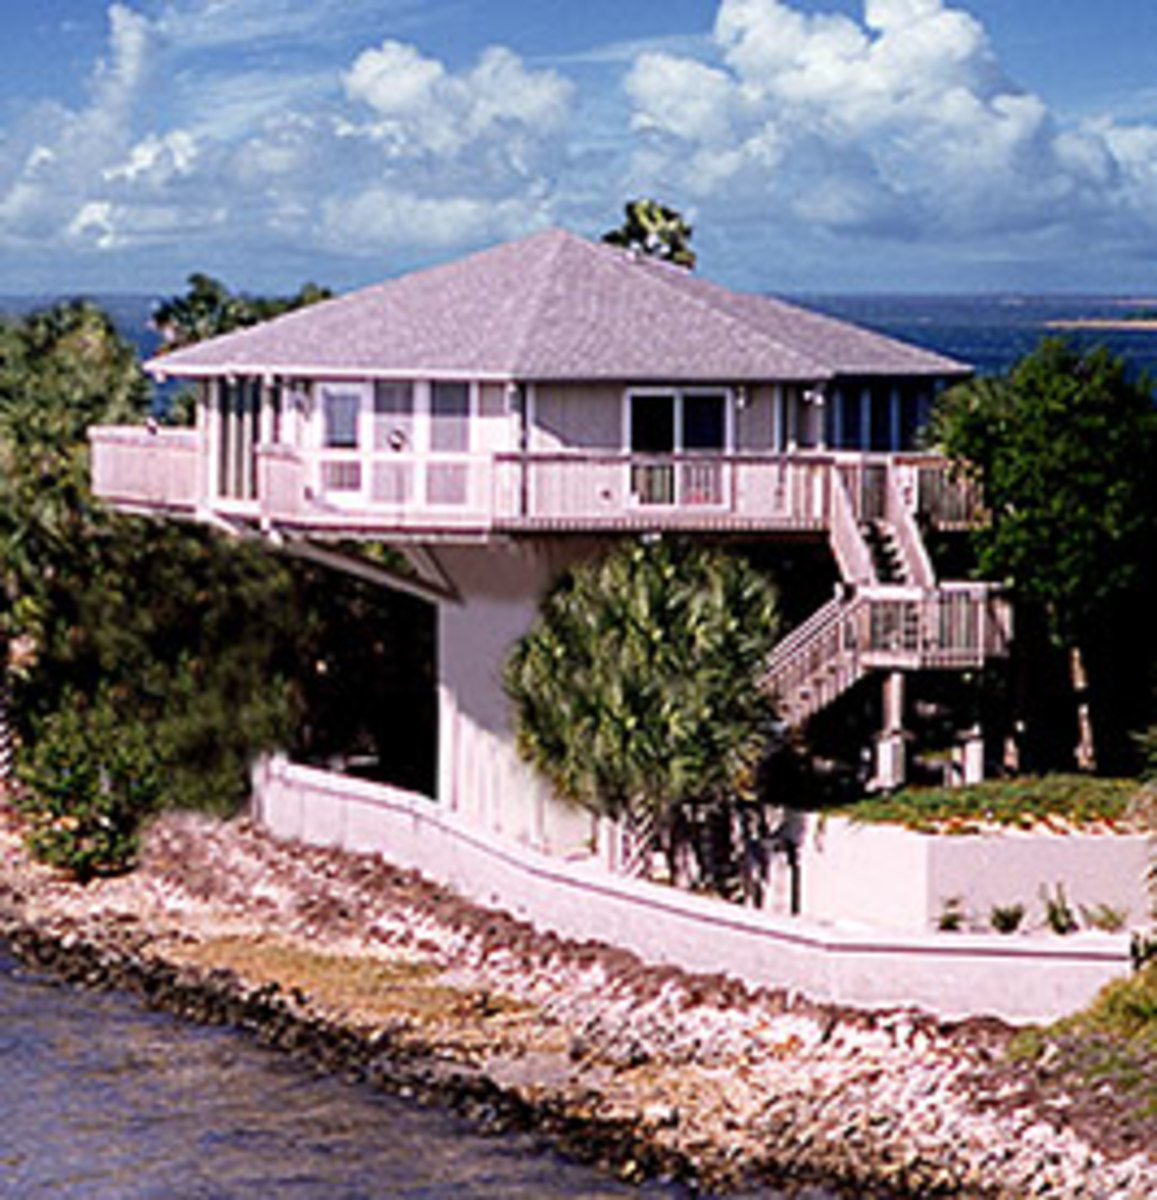 Hurricane proof house - Hurricane proof homes design ...